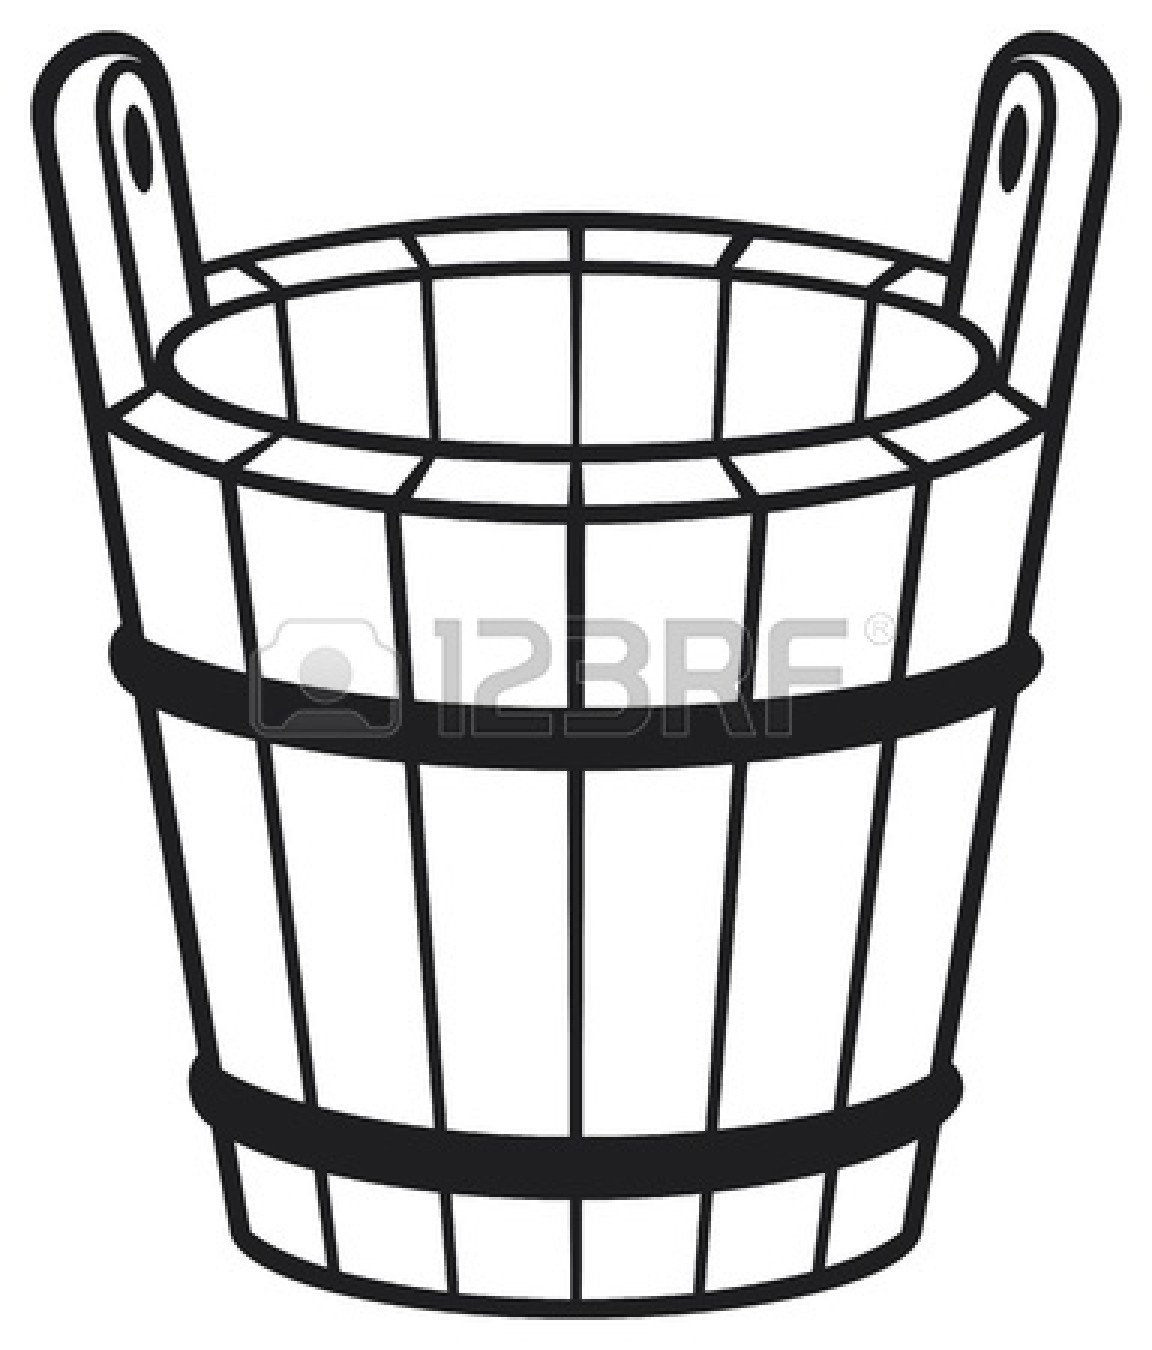 Bucket filler clipart clipart suggest for Bucket filler coloring page